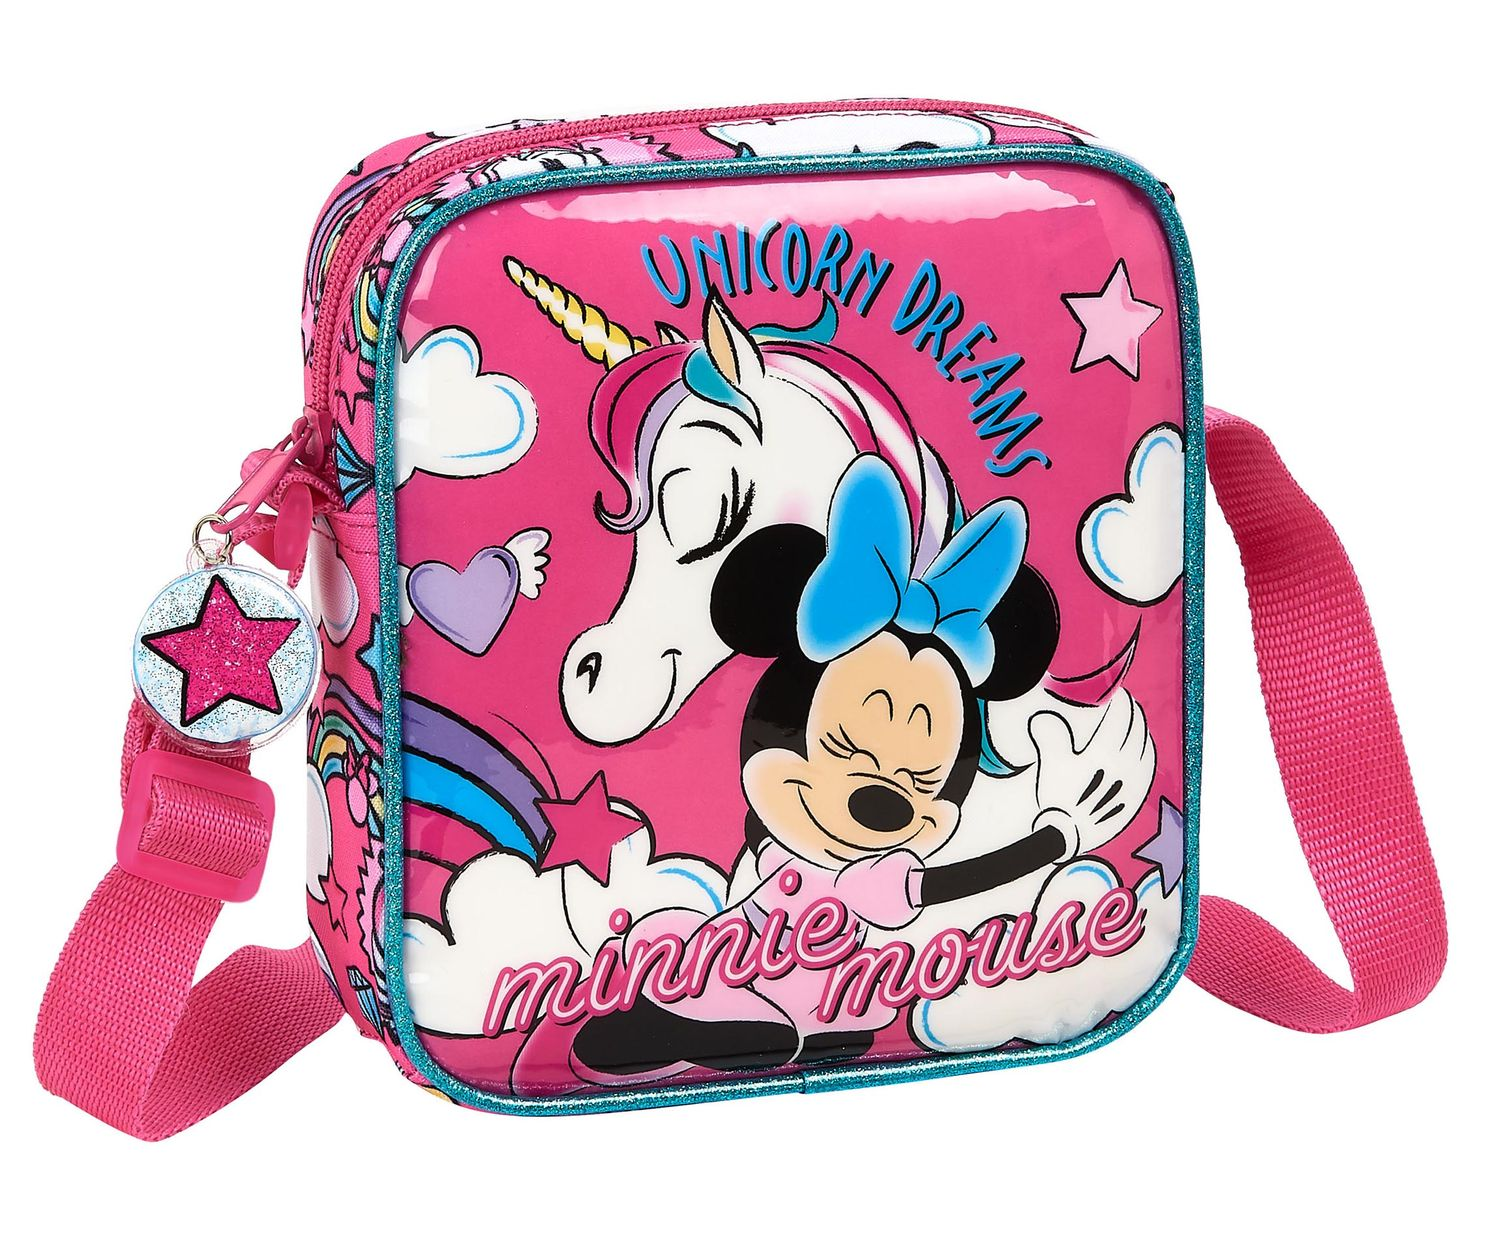 Disney MINNIE MOUSE UNICORNS Shoulder Bag 18cm – image 1